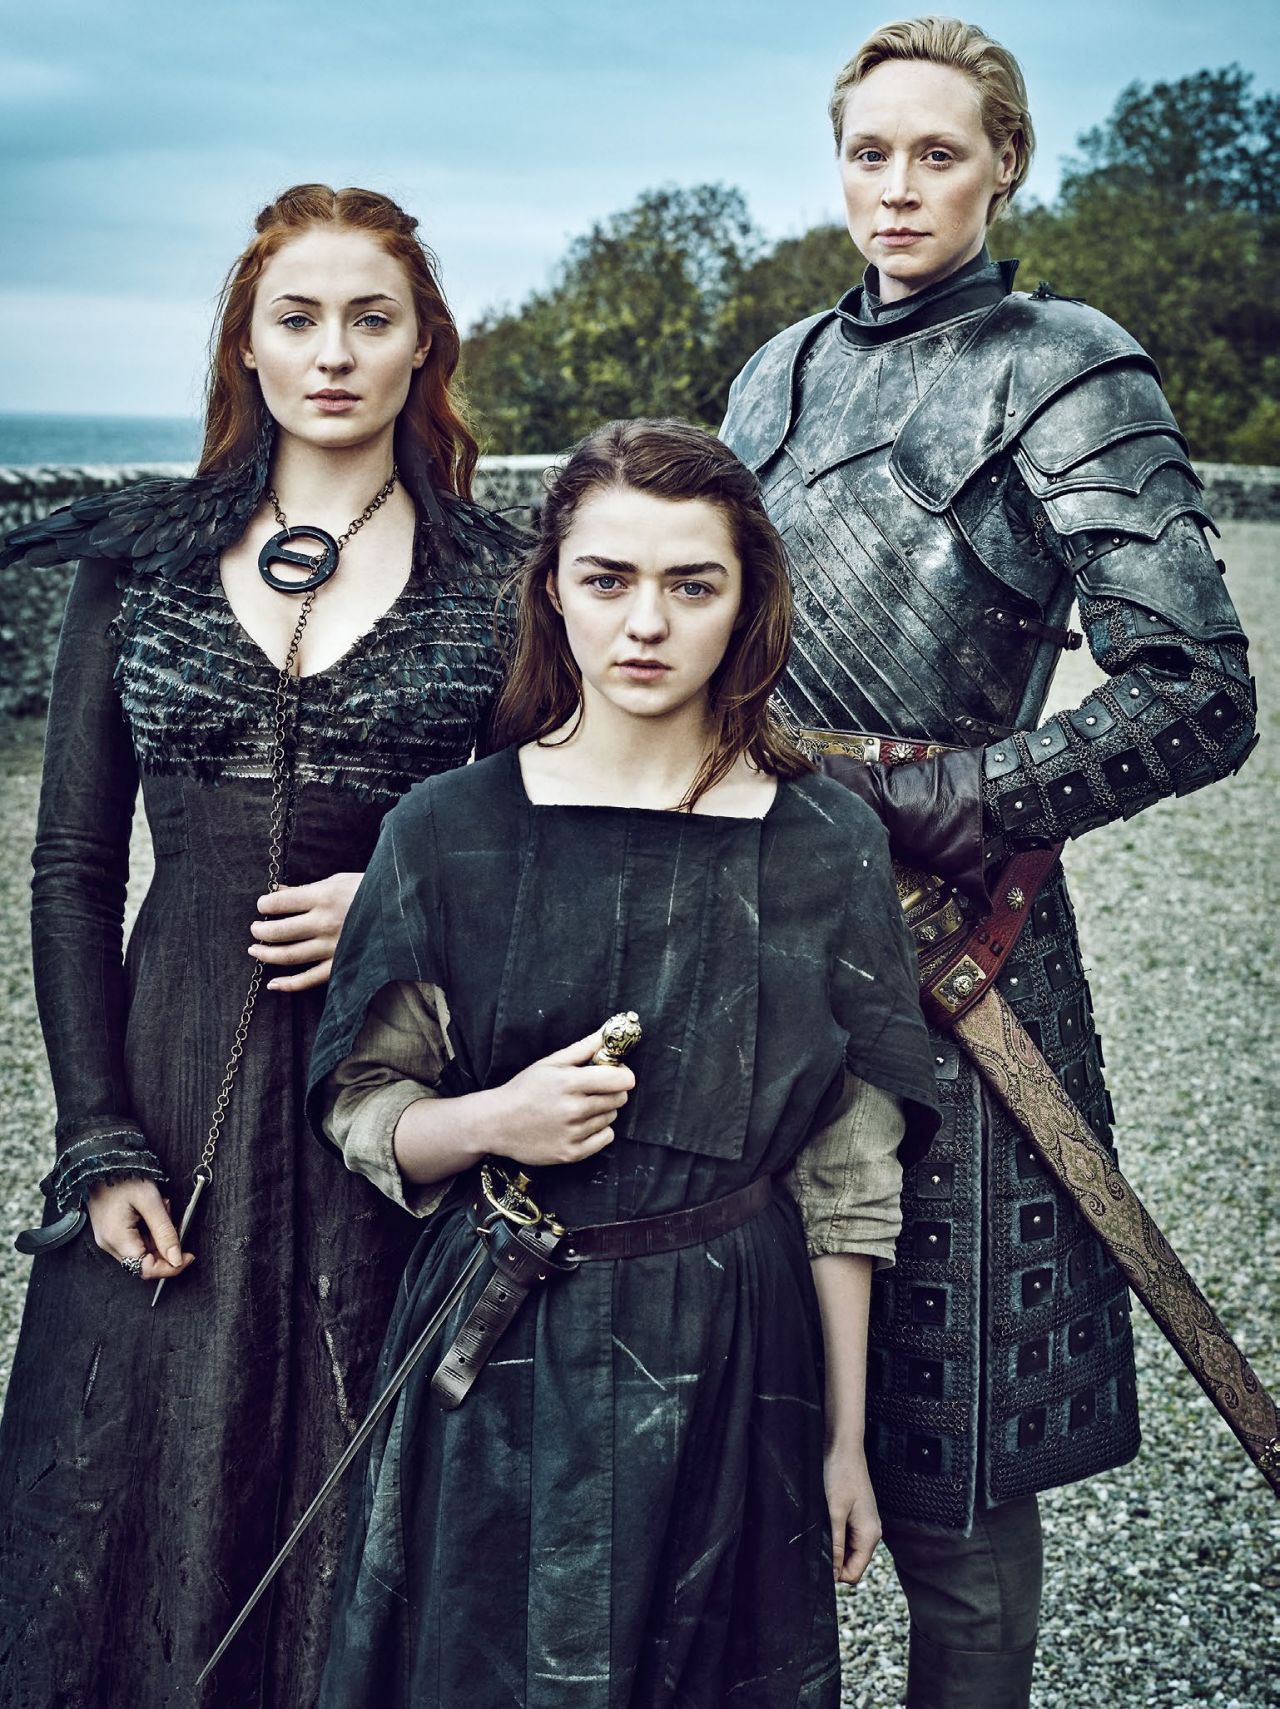 Game Of Throne Saison 6 : throne, saison, THRONES, SAISON, Nouvelle, Bande, Annonce, [Actus, Séries, Freakin', Thrones, Costumes,, Maisie, Williams,, Sansa, Stark